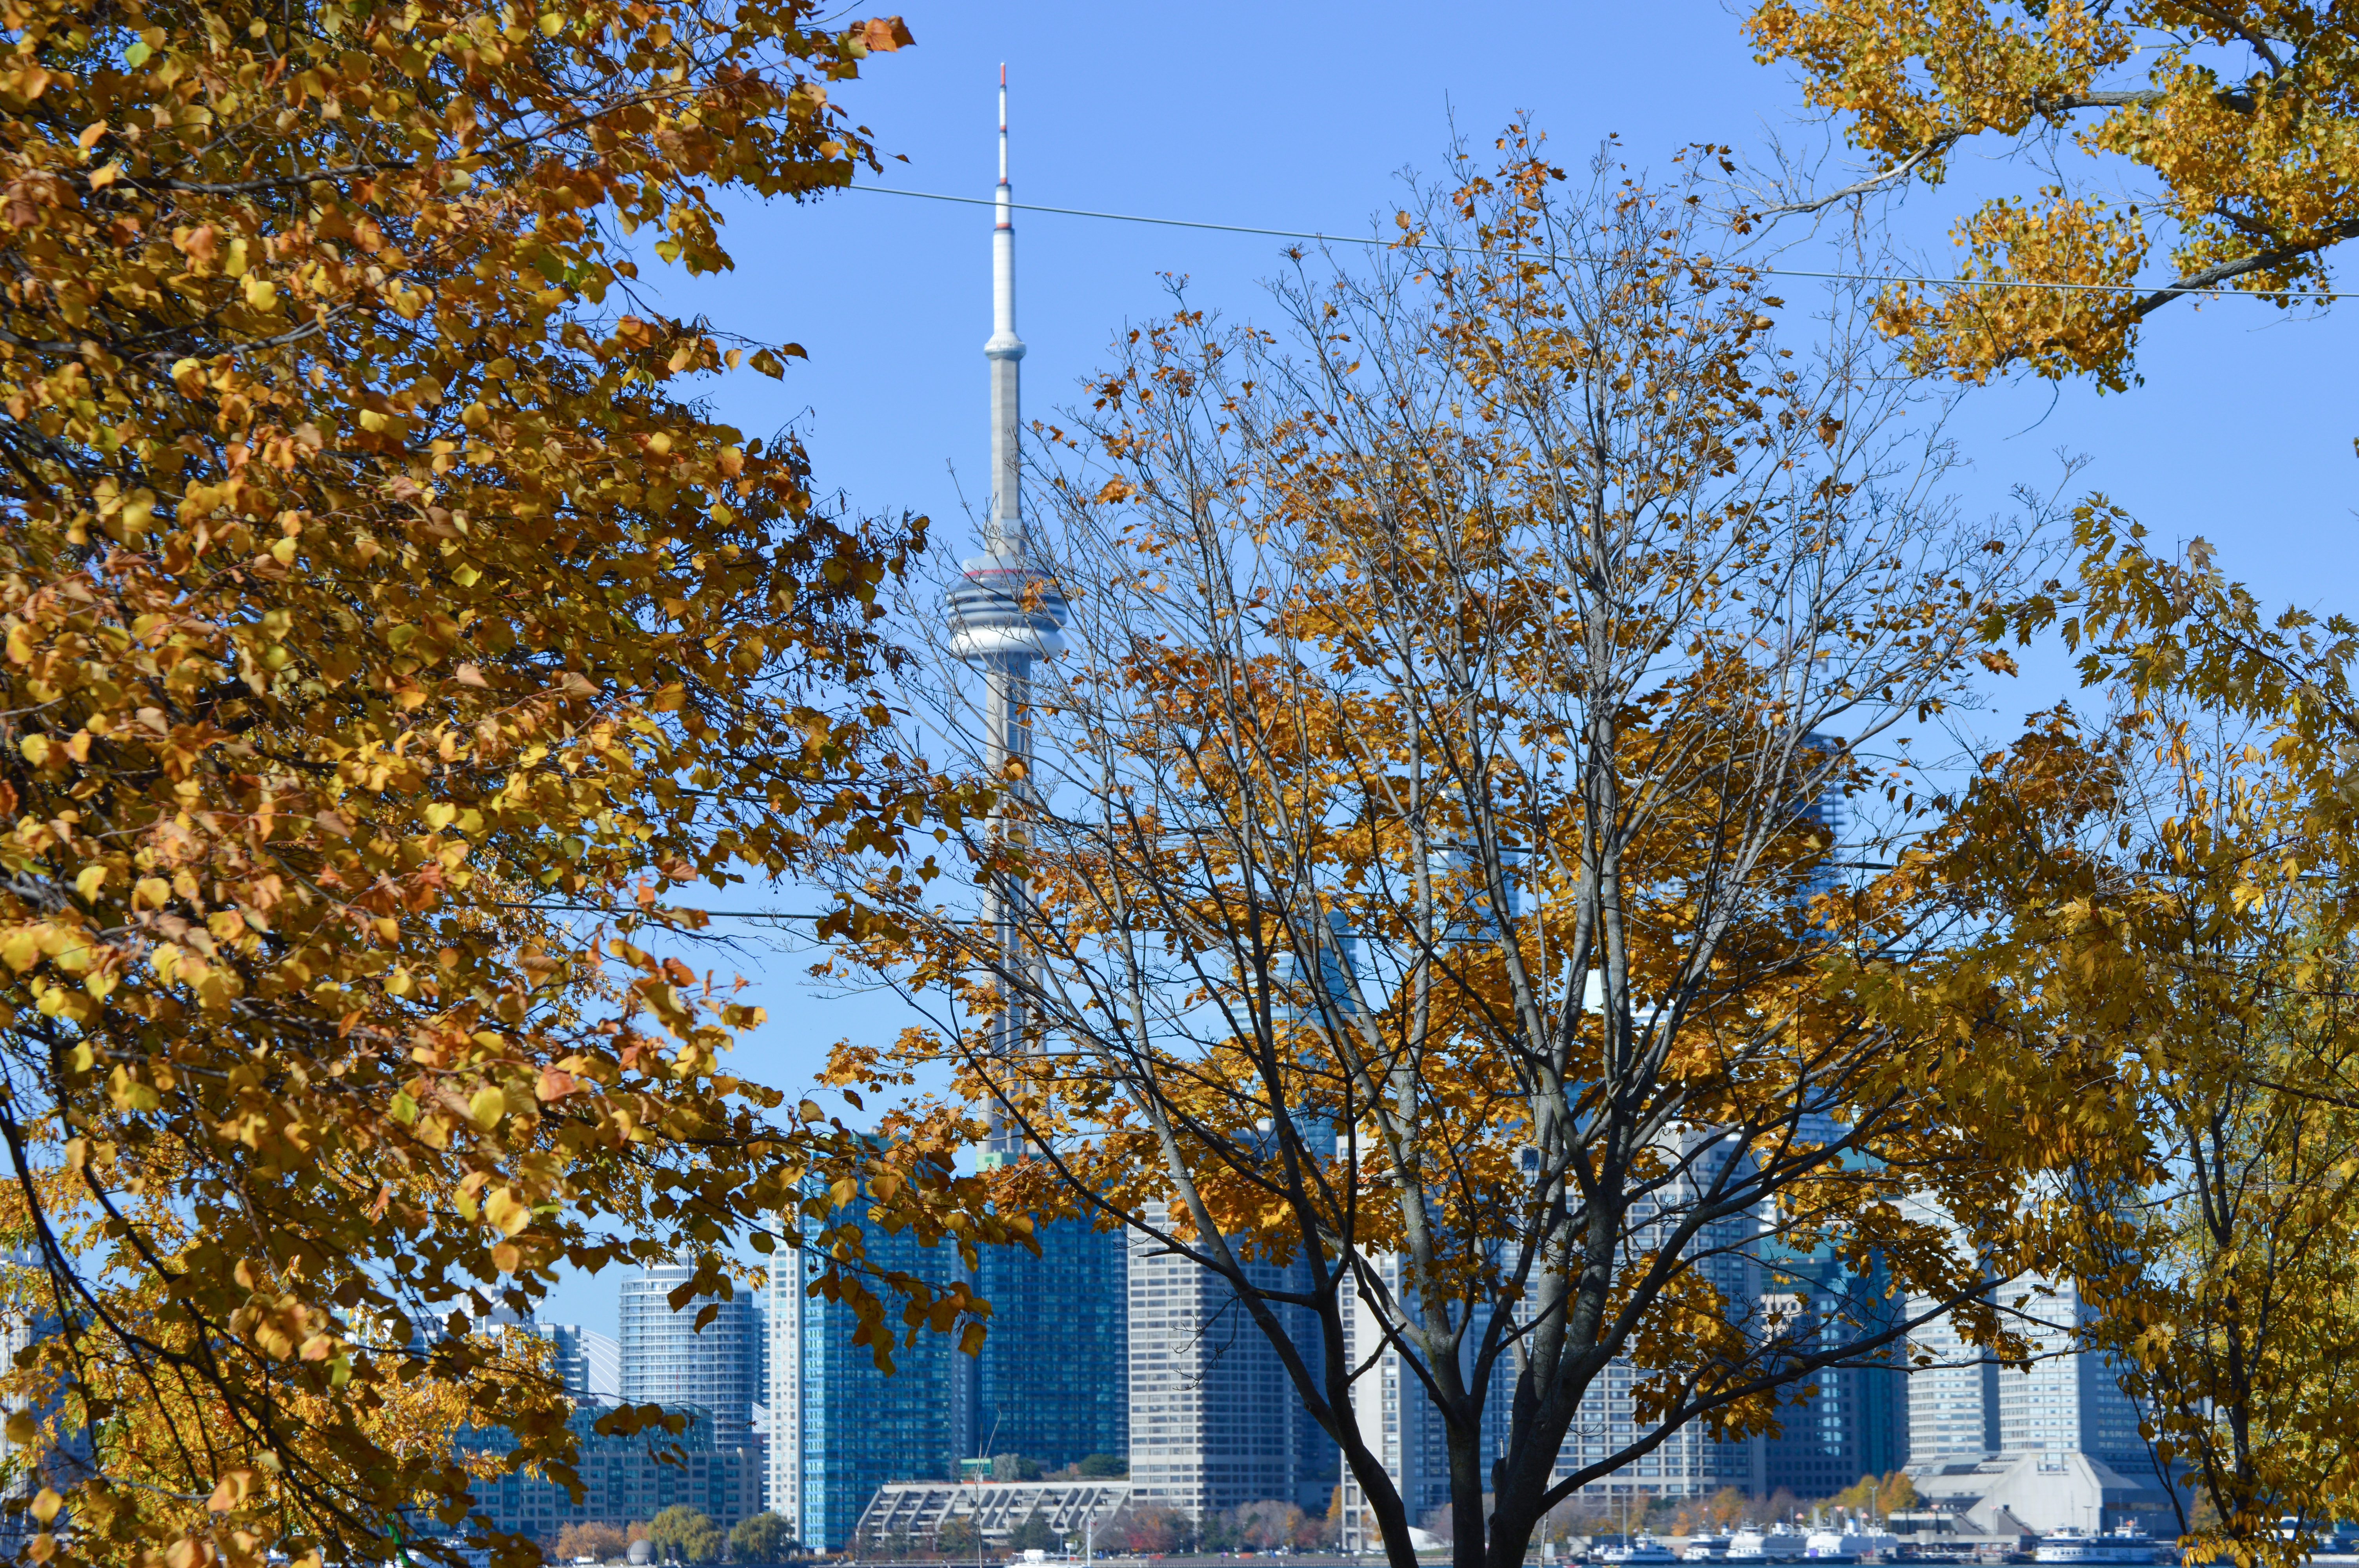 toronto islands - toronto, canada - things to do in toronto